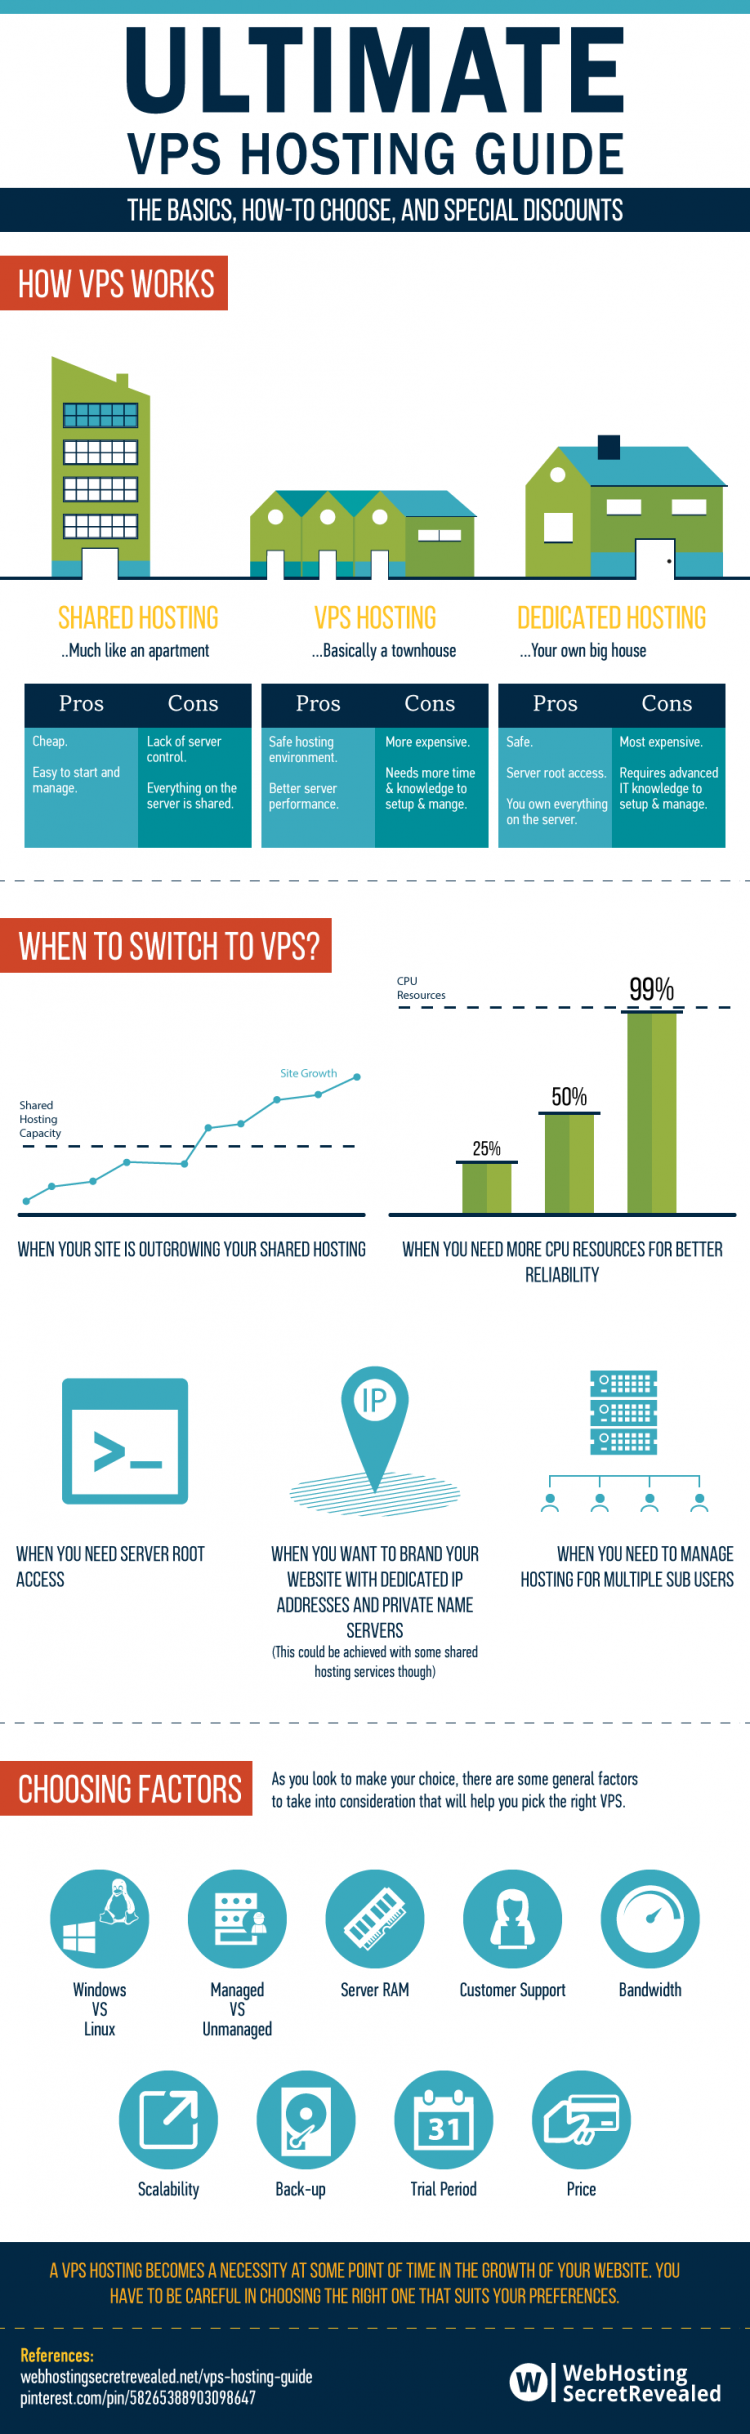 VPS Hosting Guide - infographic